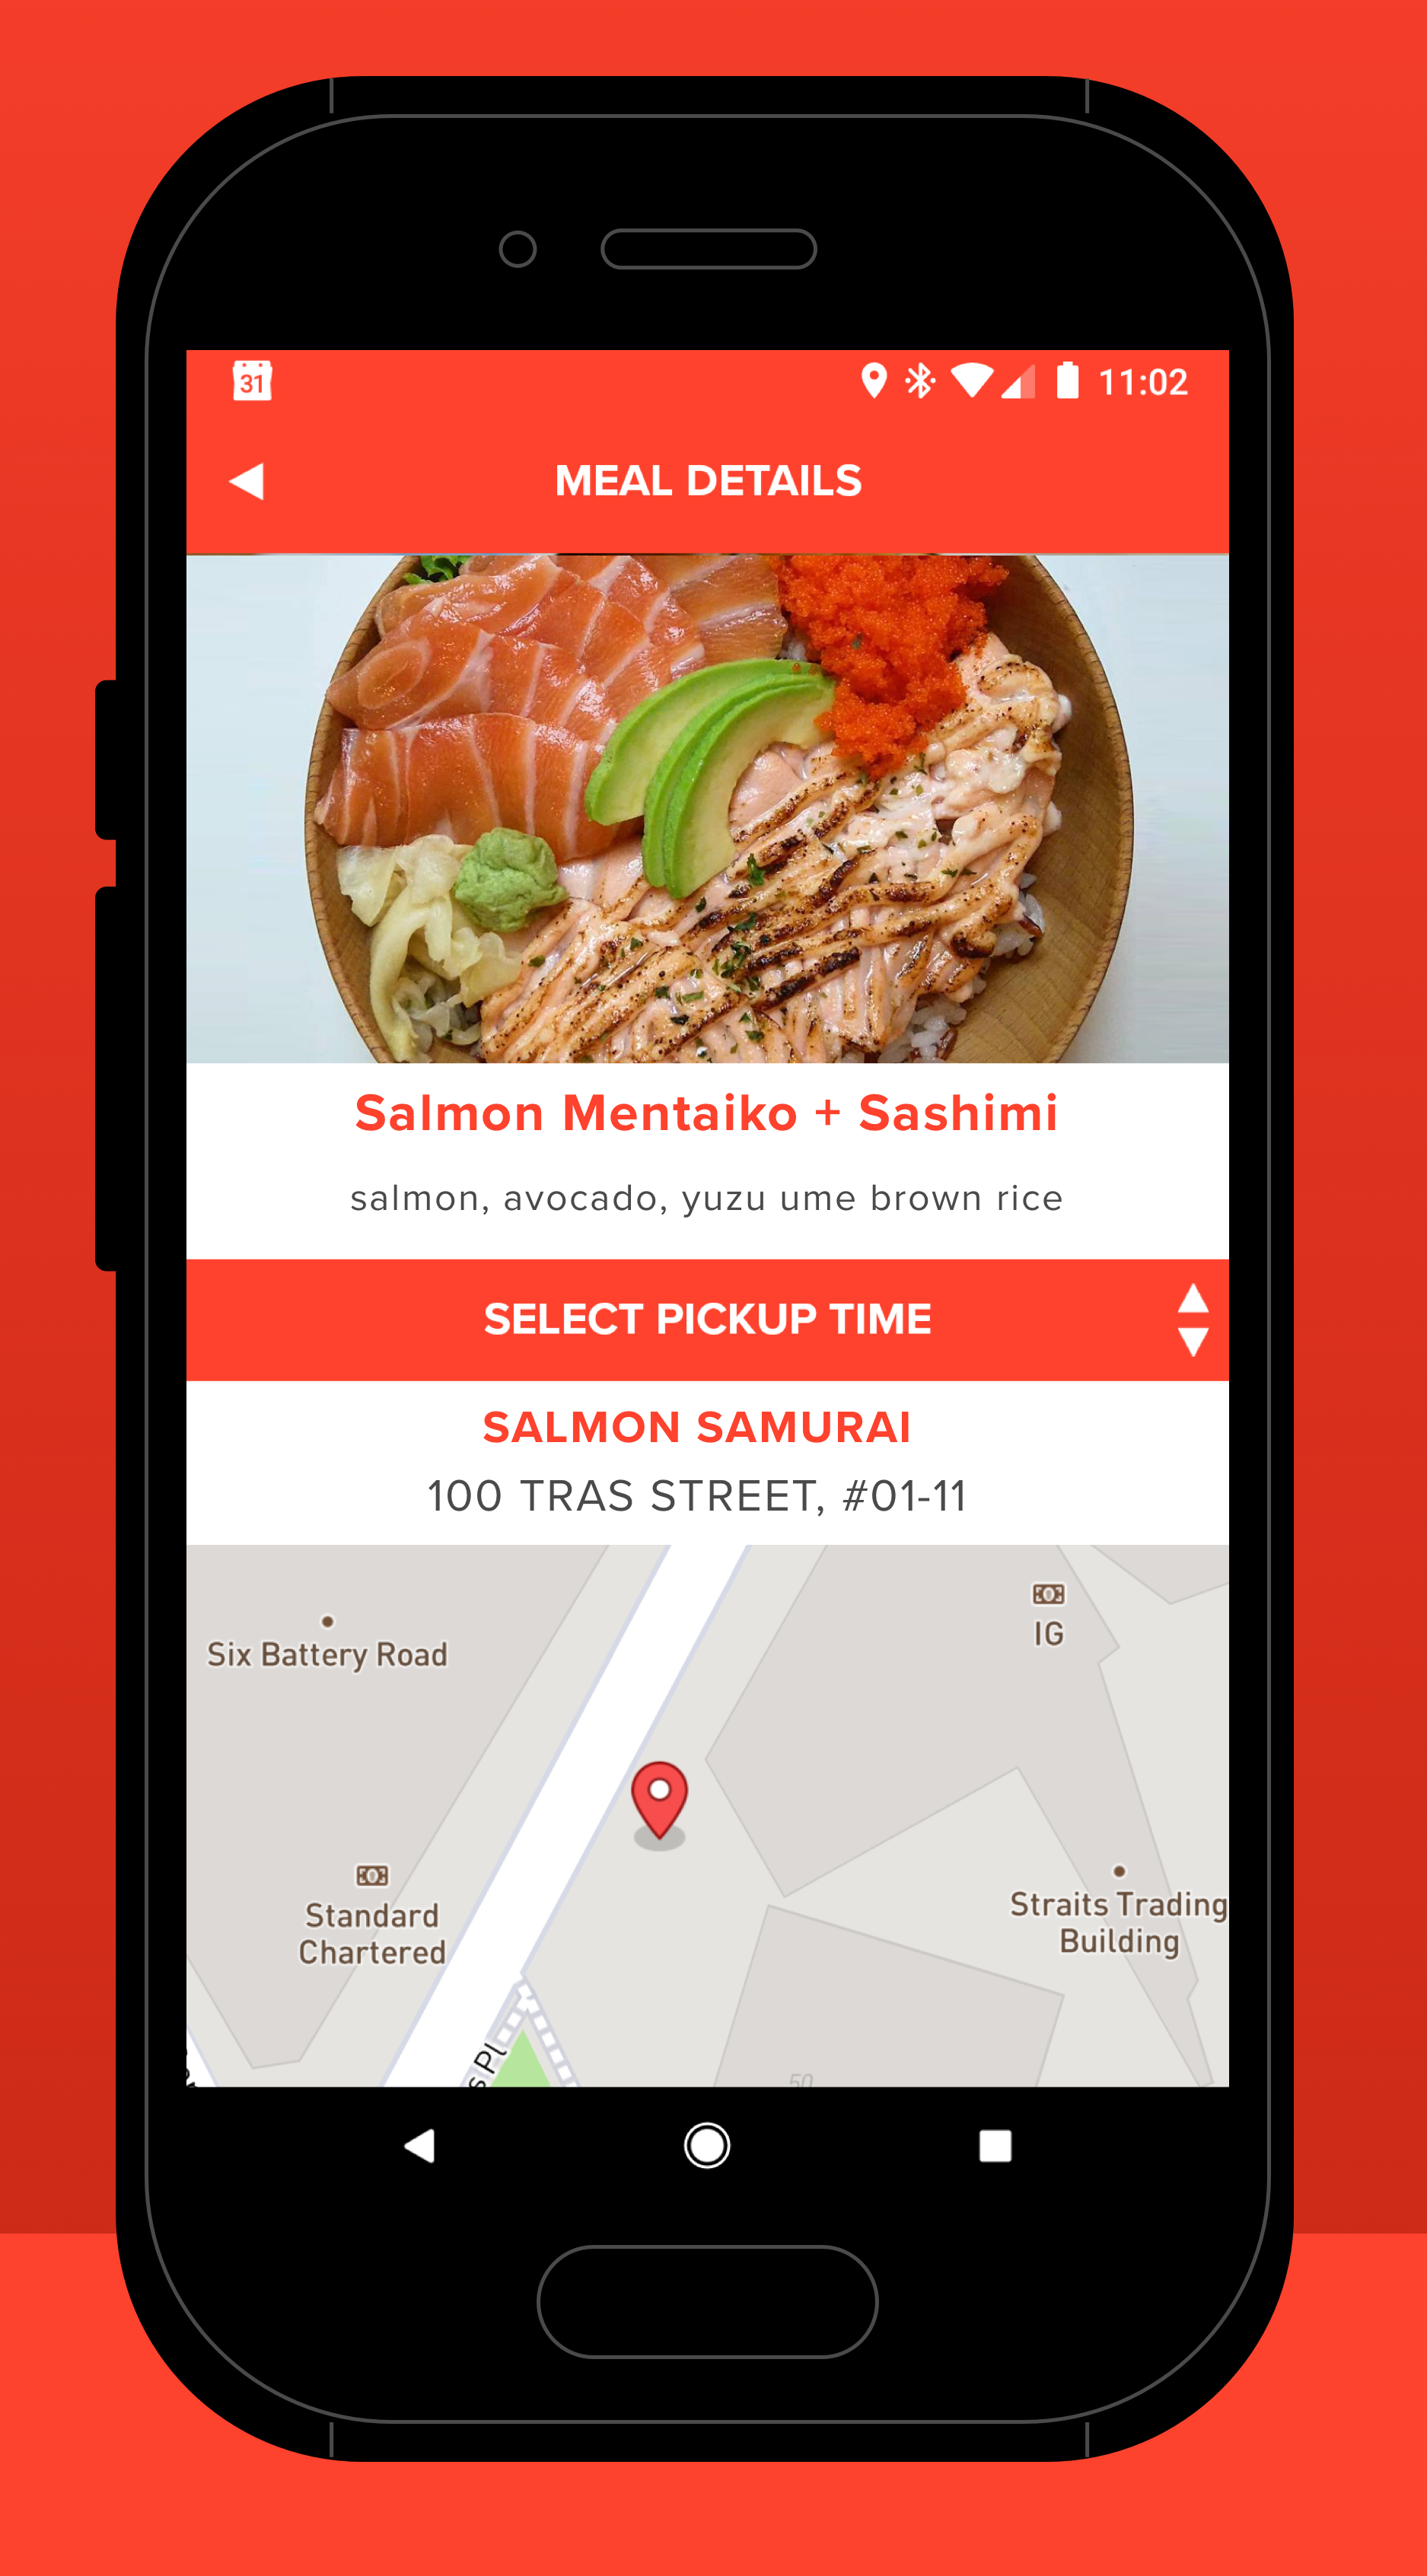 Mealpal Launches In S Pore Subscribe For 12 Meals A Month At 7 99